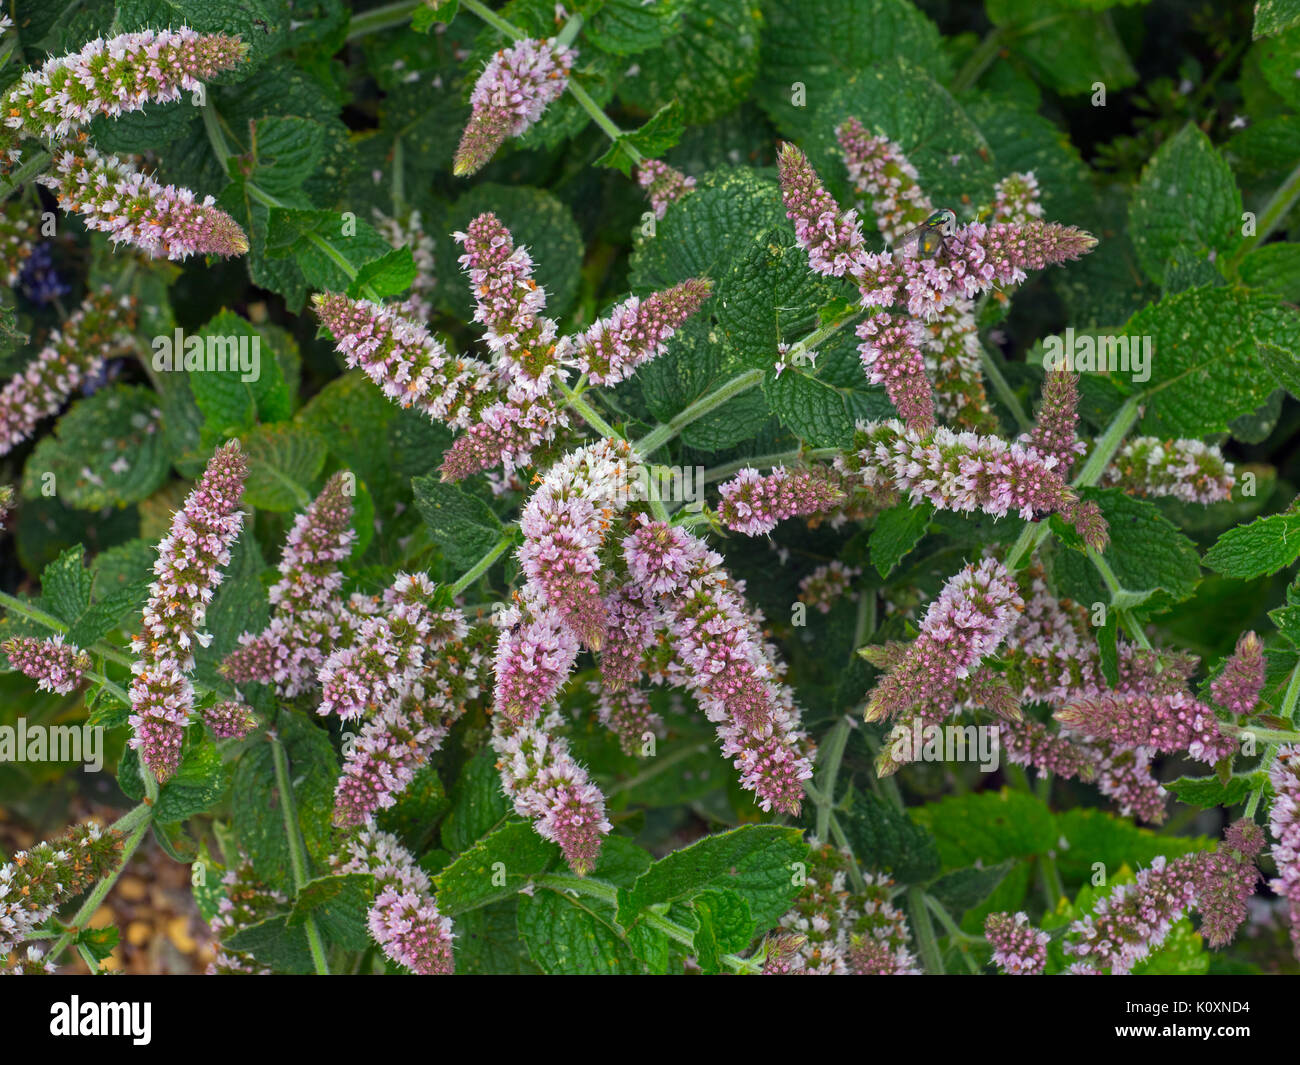 Mint Bowles Mentha rotundifolia Flowers and leaves - Stock Image